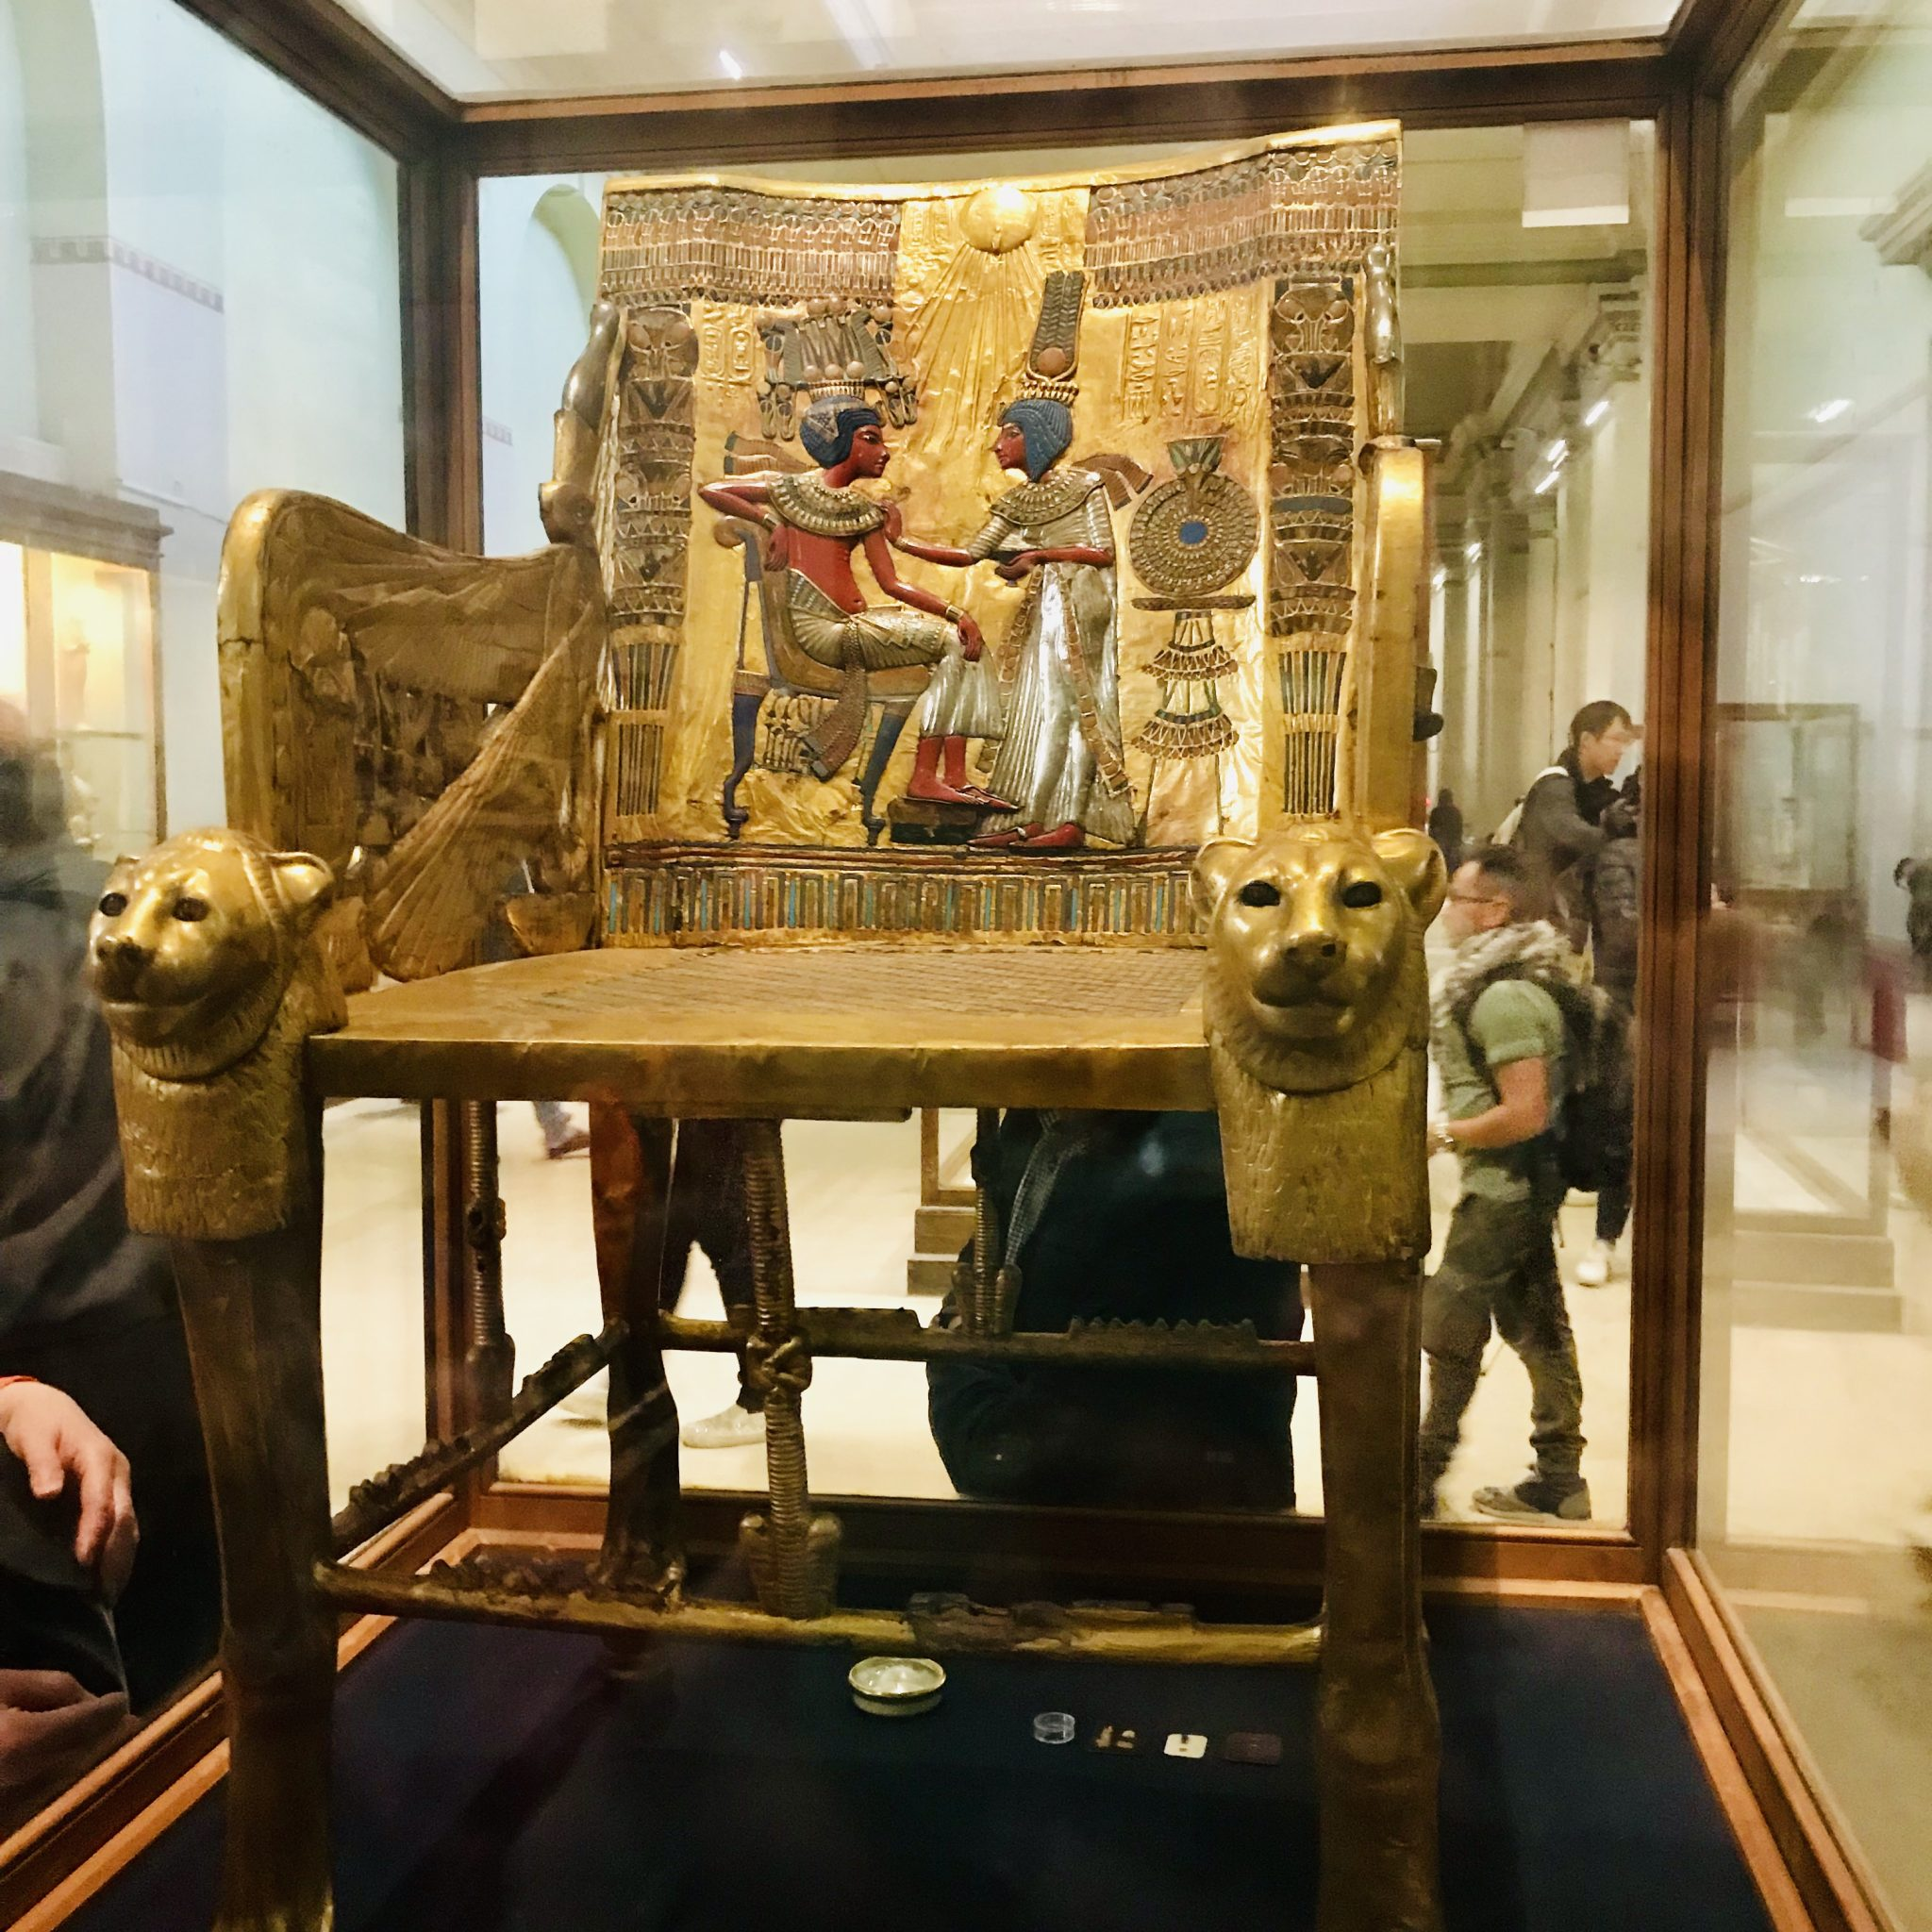 king tut exhibit in cairo egypt